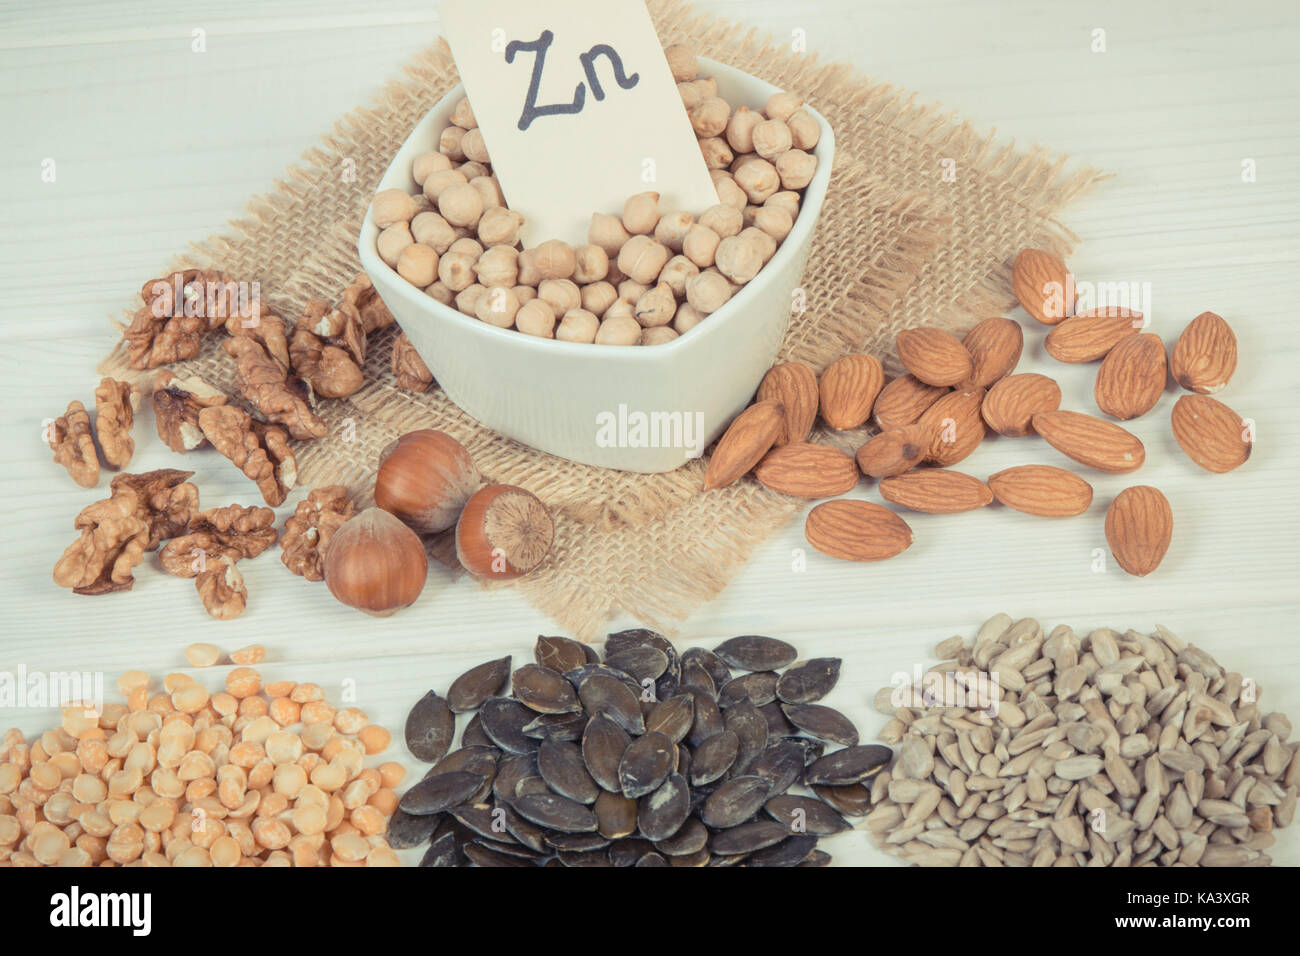 Vintage photo, Inscription Zn, Ingredients or products containing zinc and dietary fiber on white board, natural - Stock Image